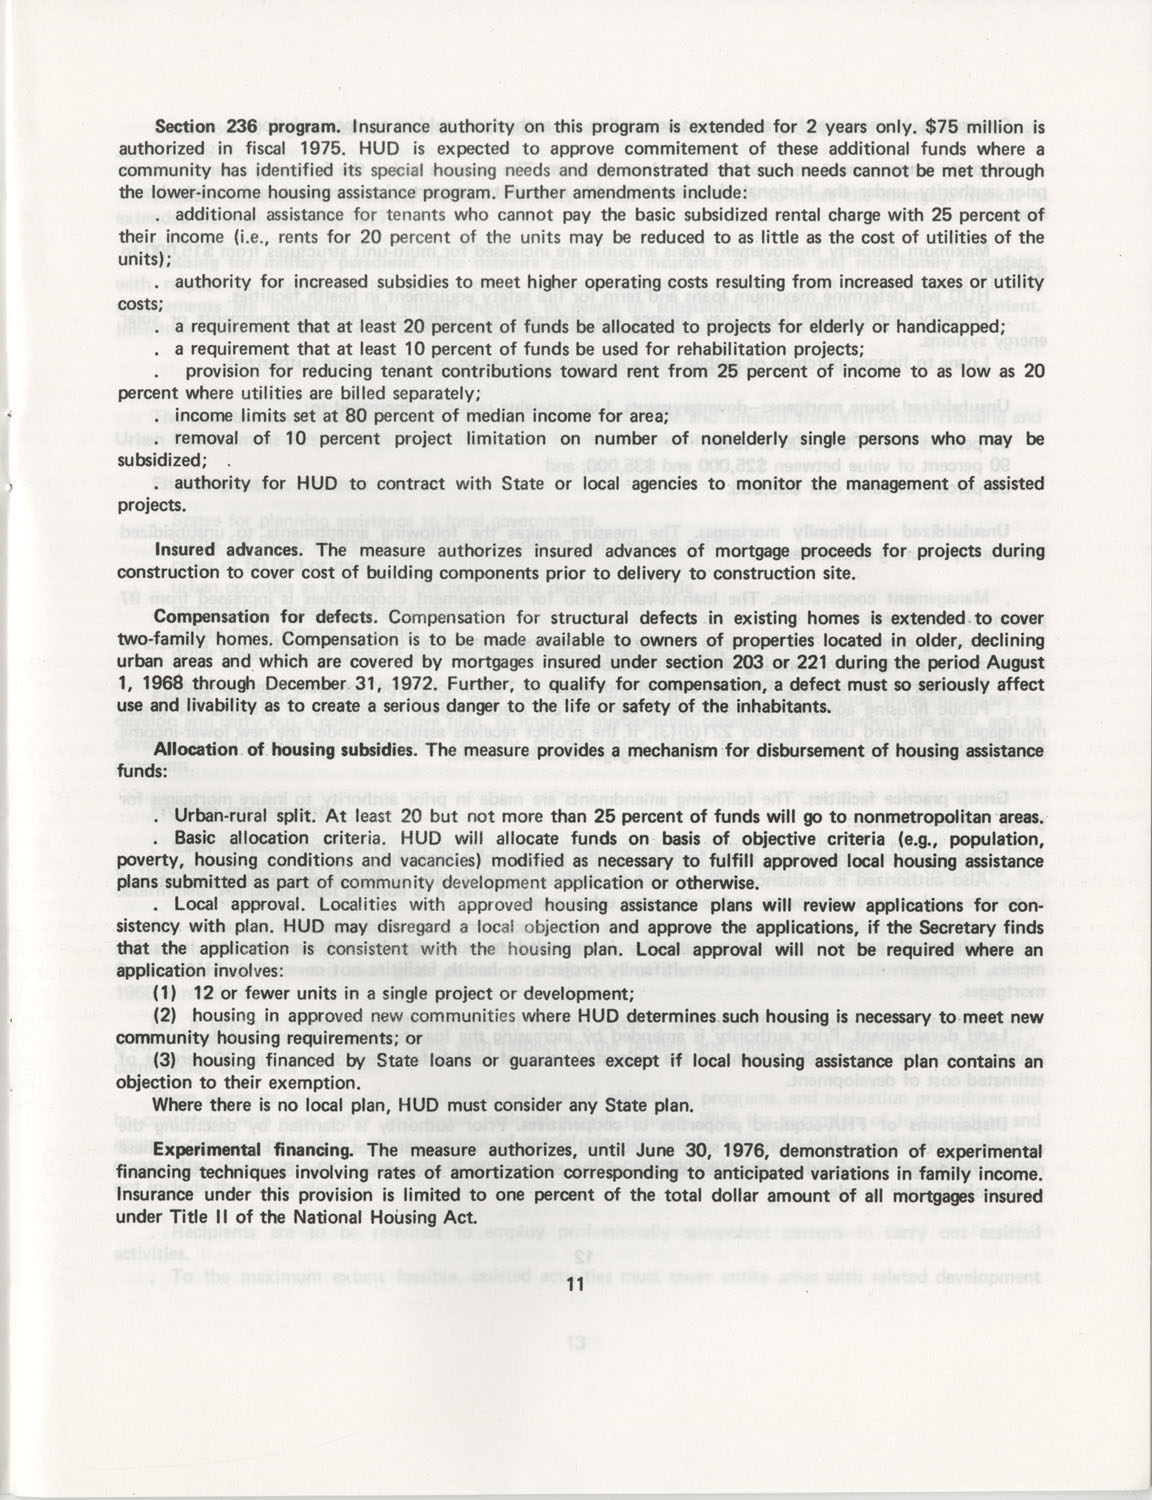 Summary of the Housing and Community Development Act of 1974, Page 11